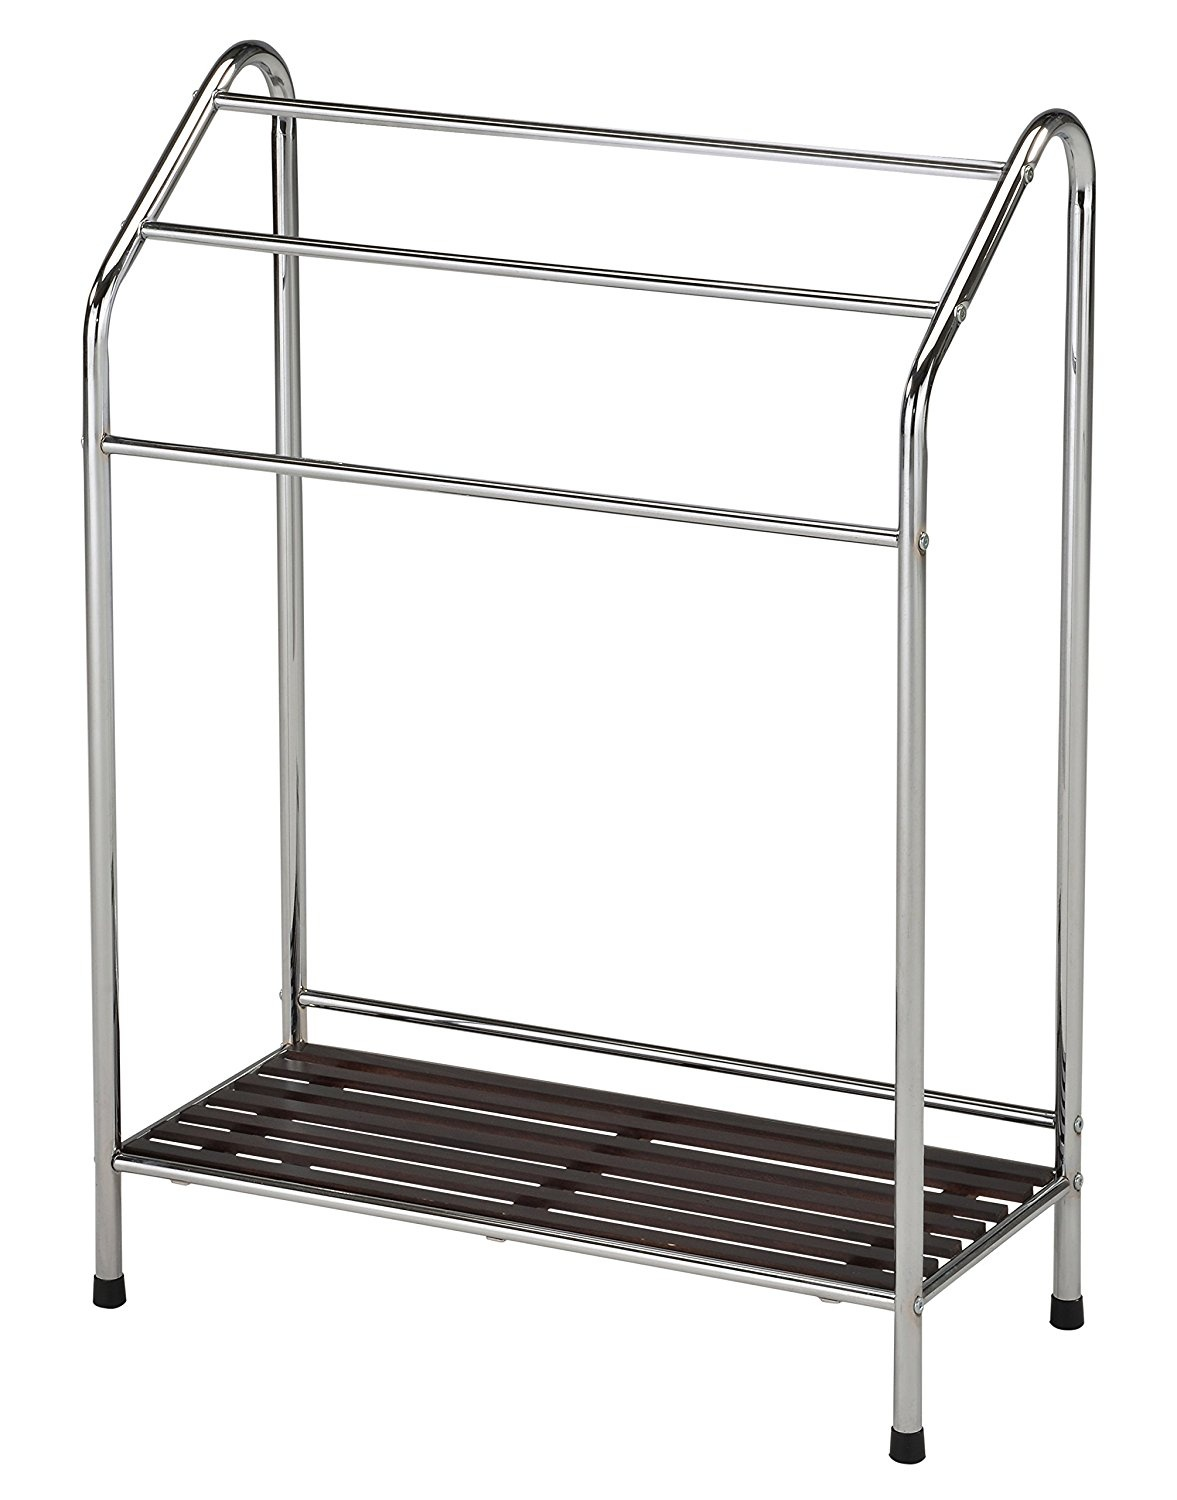 Bathroom Towel Stand Kings Brand Victory Chrome Free Standing Bathroom Towel Rack Stand With Shelf